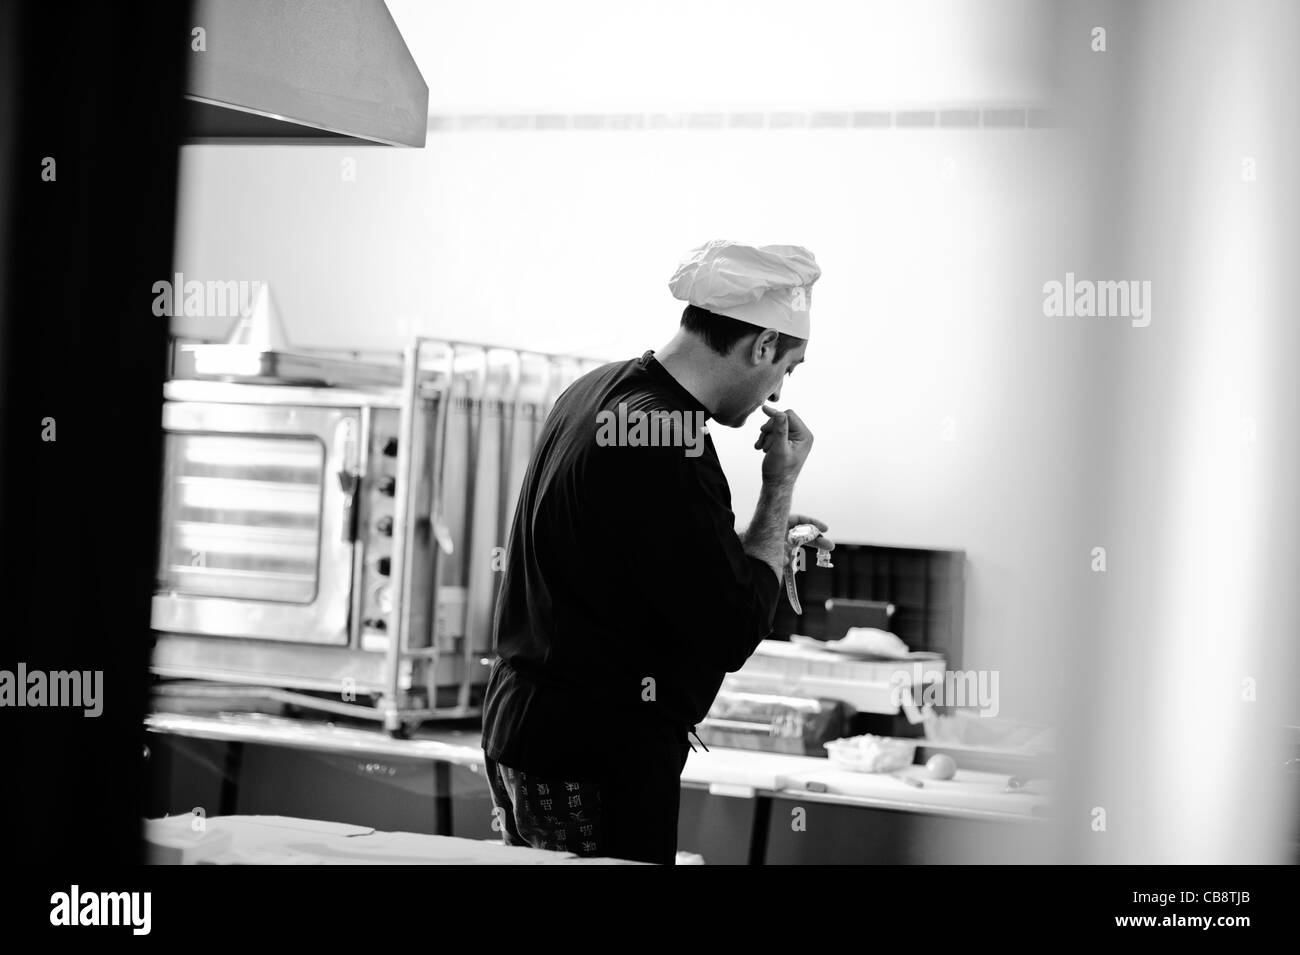 chef in the kitchen - Stock Image